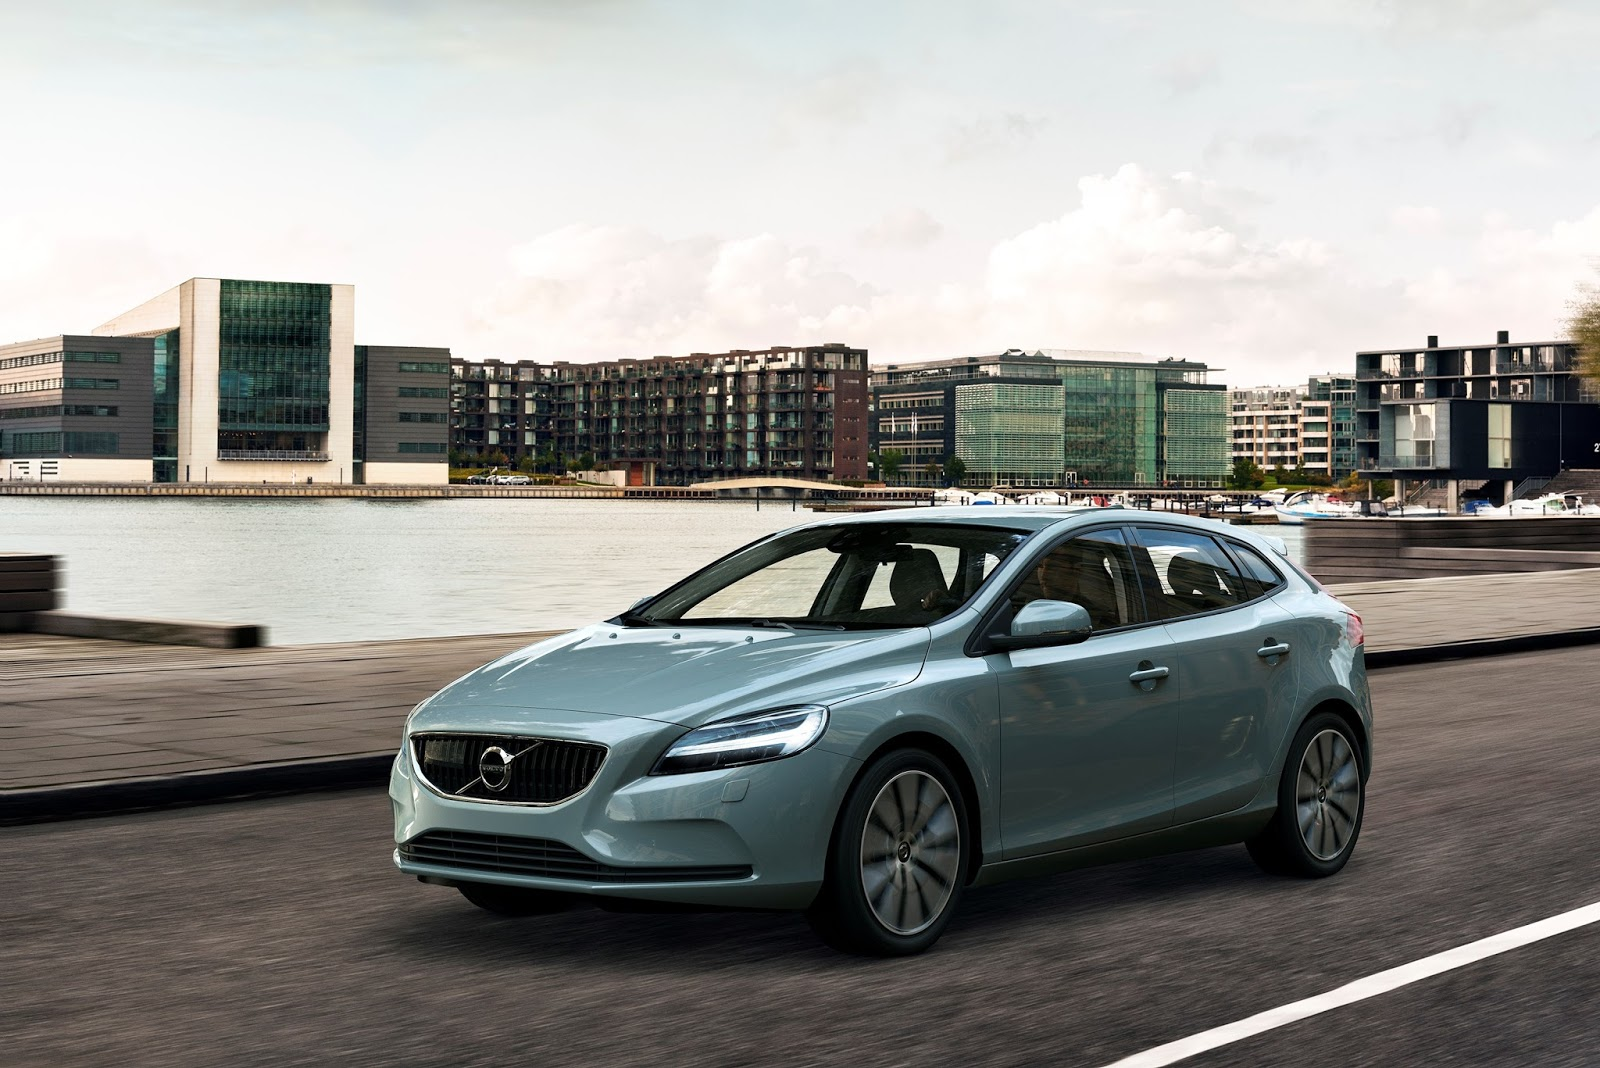 Tα Volvo V40 και V40 Cross Country